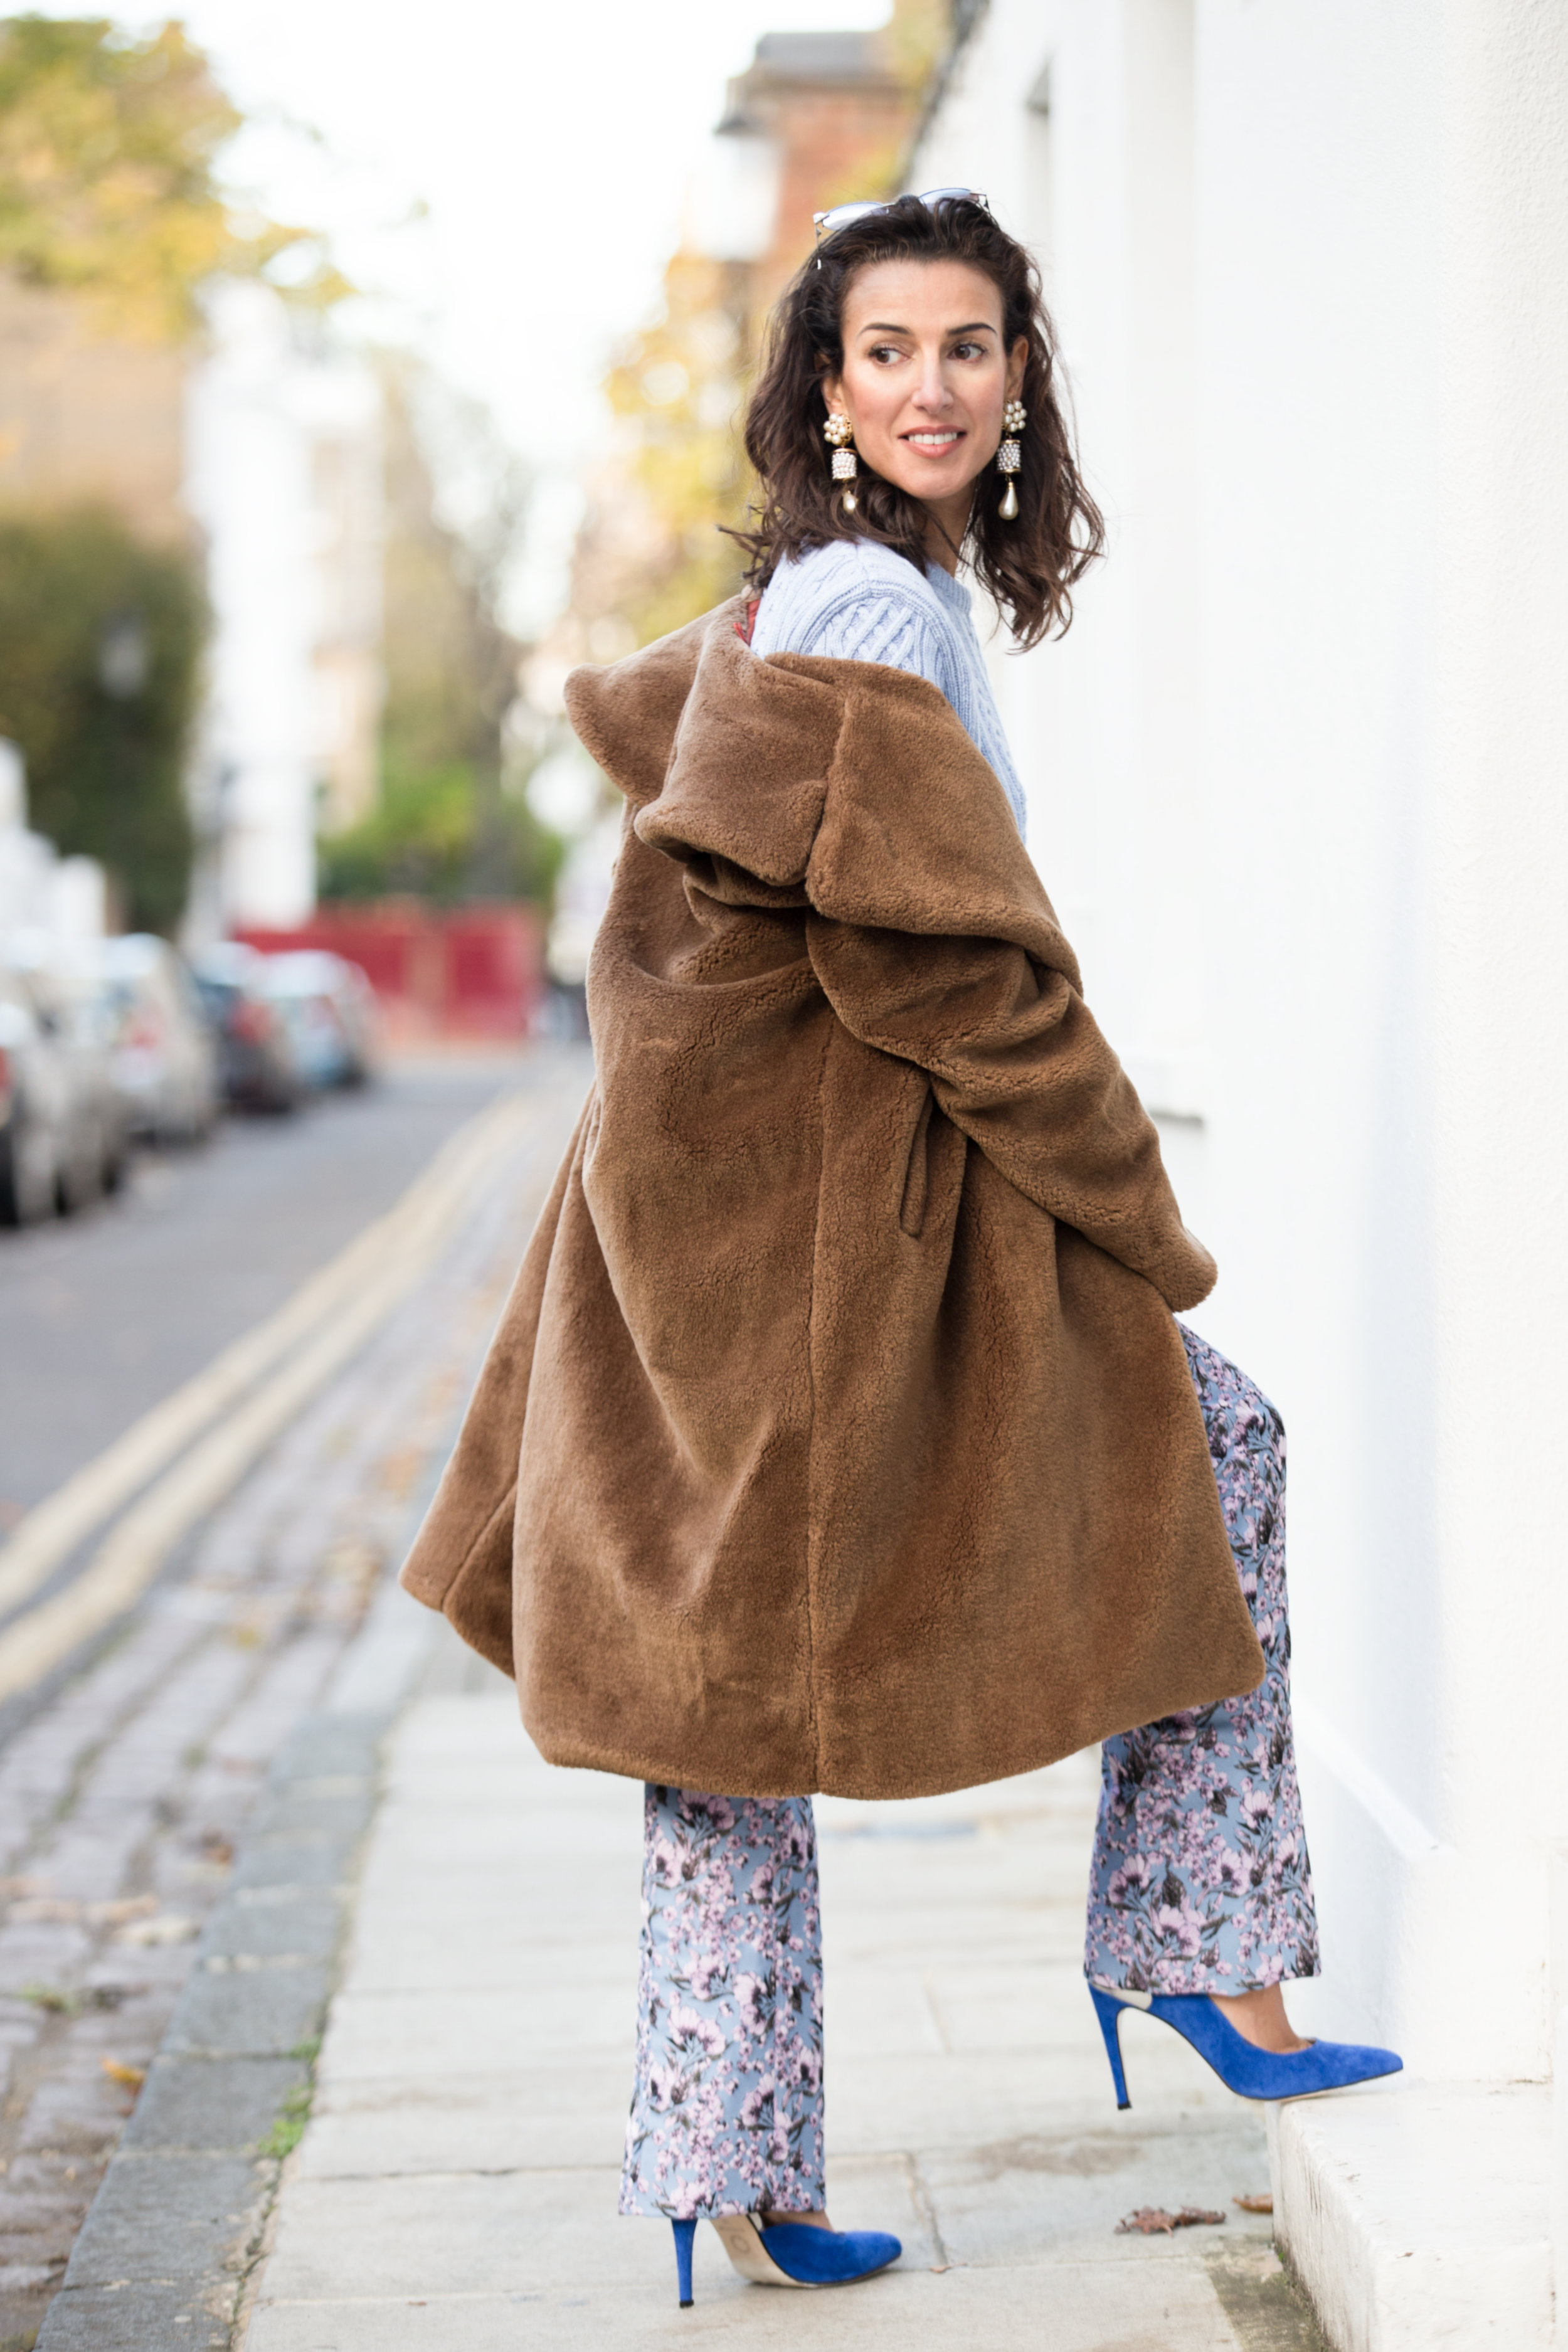 LIGHT BLUE IN LONDONNOVEMBER 24,2017 - If there is something I love, its to combine classic colours, I love to make my outfits transmit something, in this case the light blue is a fresh and calm color, (it´s flattering especially for brunettes) which I matched with a dark camel color, I just love this kind of contrast...read more